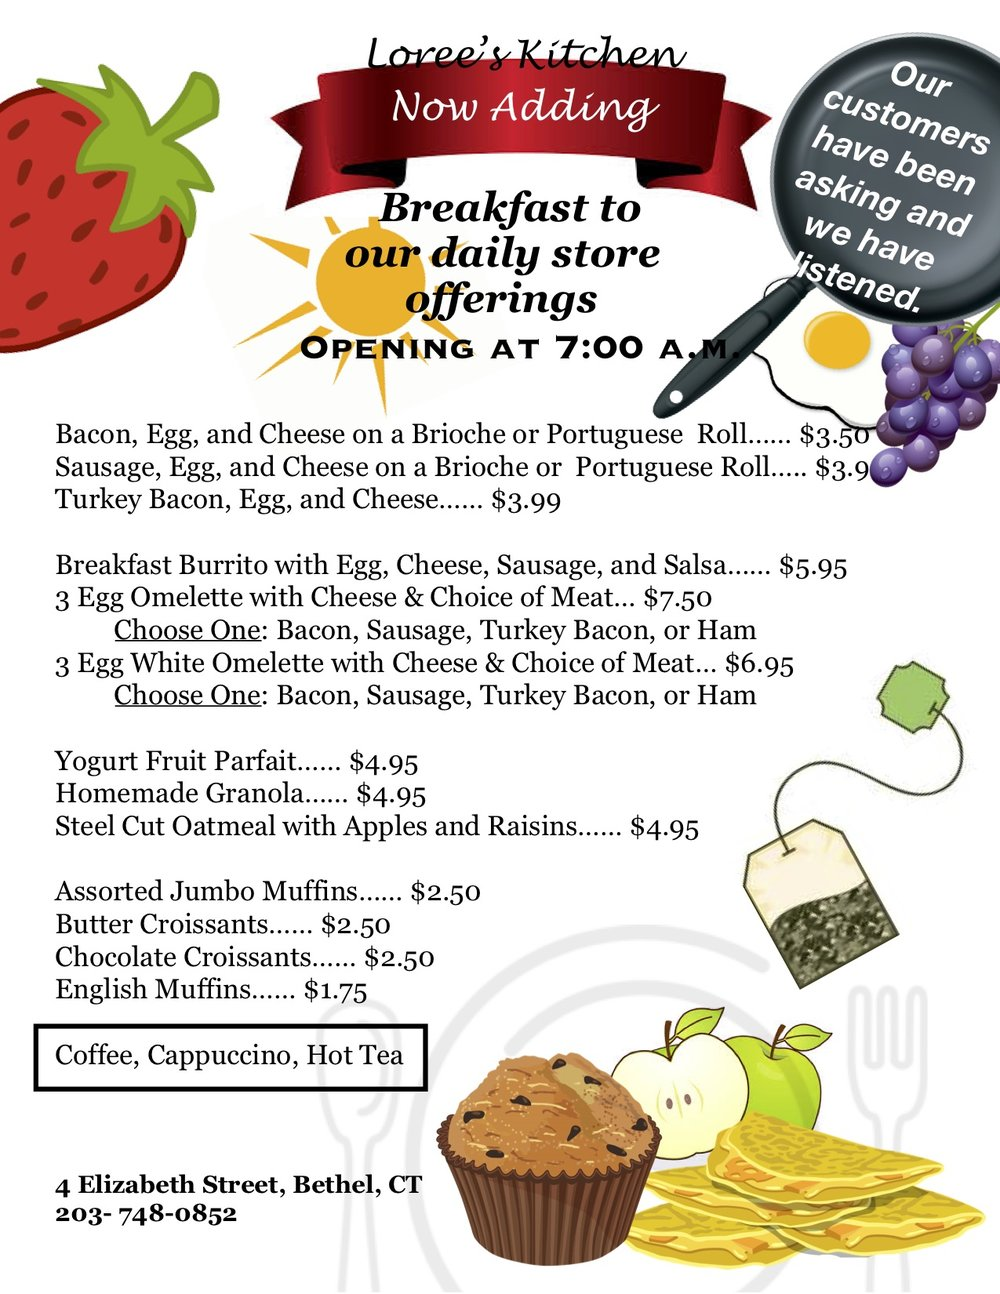 Breakfast Menu 2:15.pages.jpg